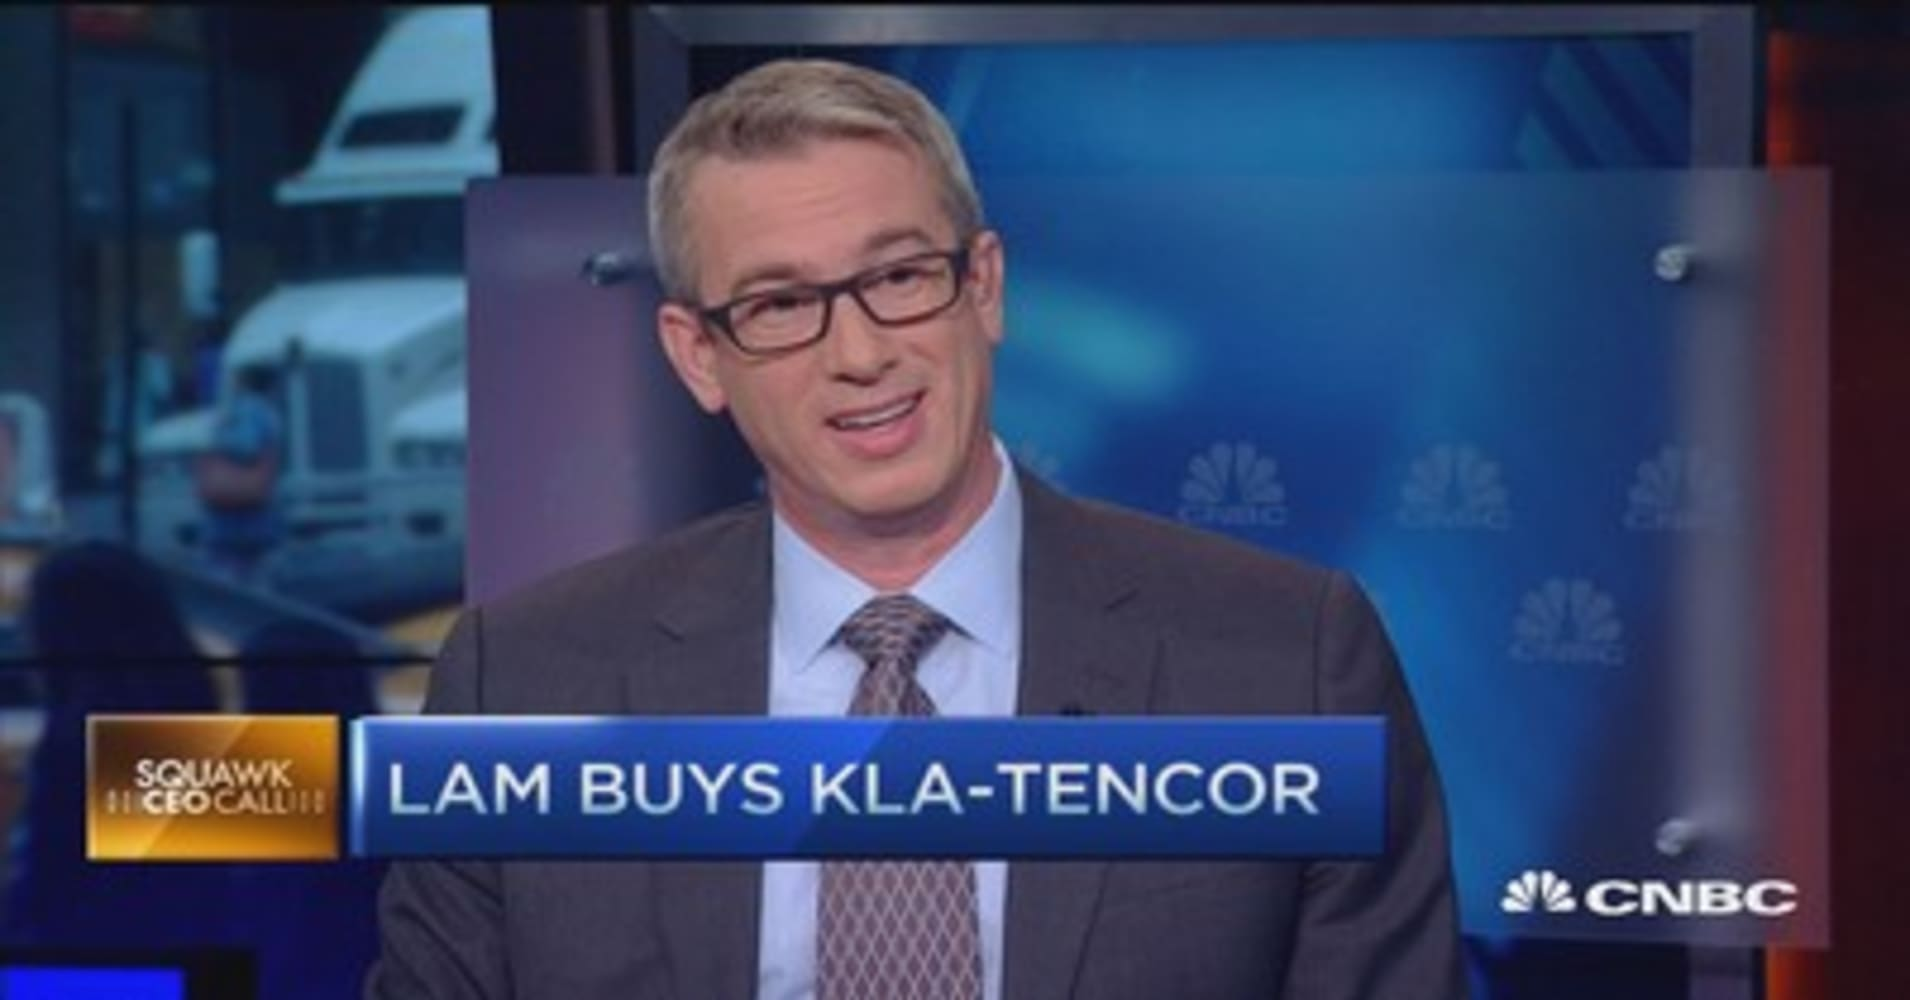 Lam Research CEO on buying KLA-Tencor